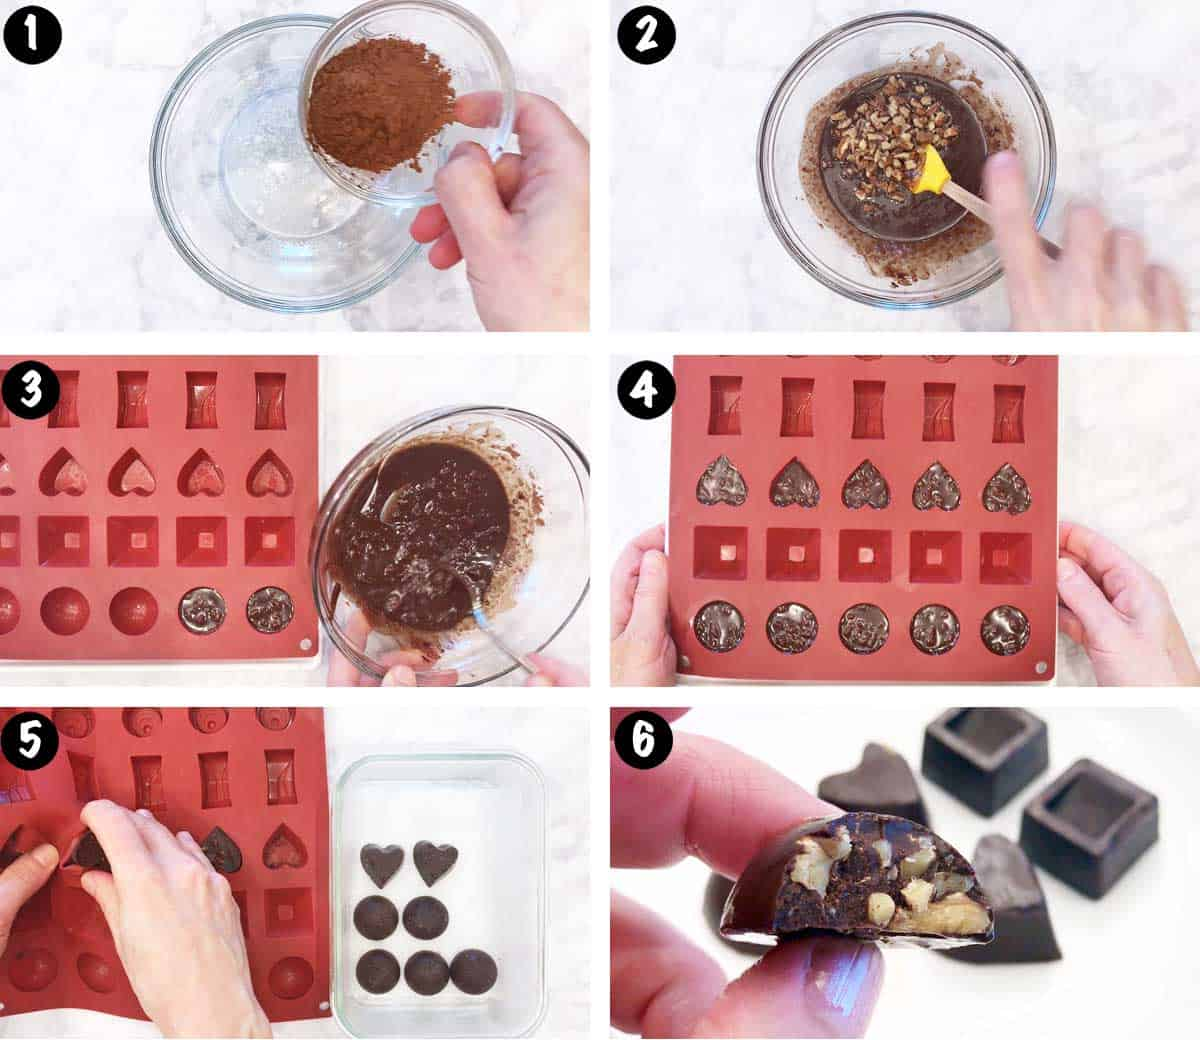 A photo collage showing the steps for making homemade chocolate.